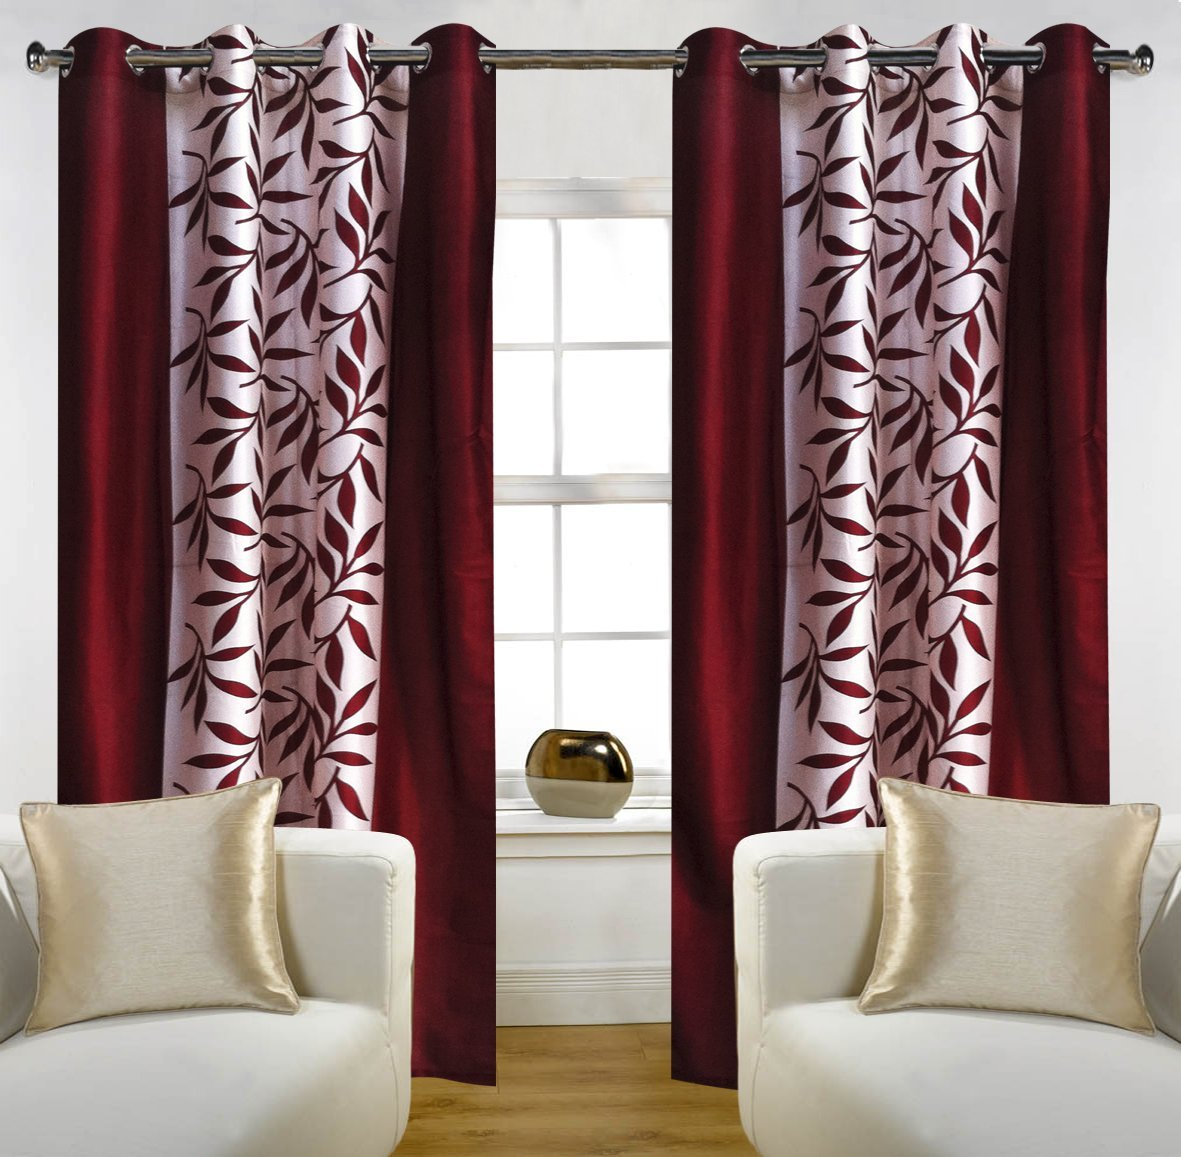 Entry Door Side Panel Curtains Sidelight Erod Curtain Rod Essential Home Shower